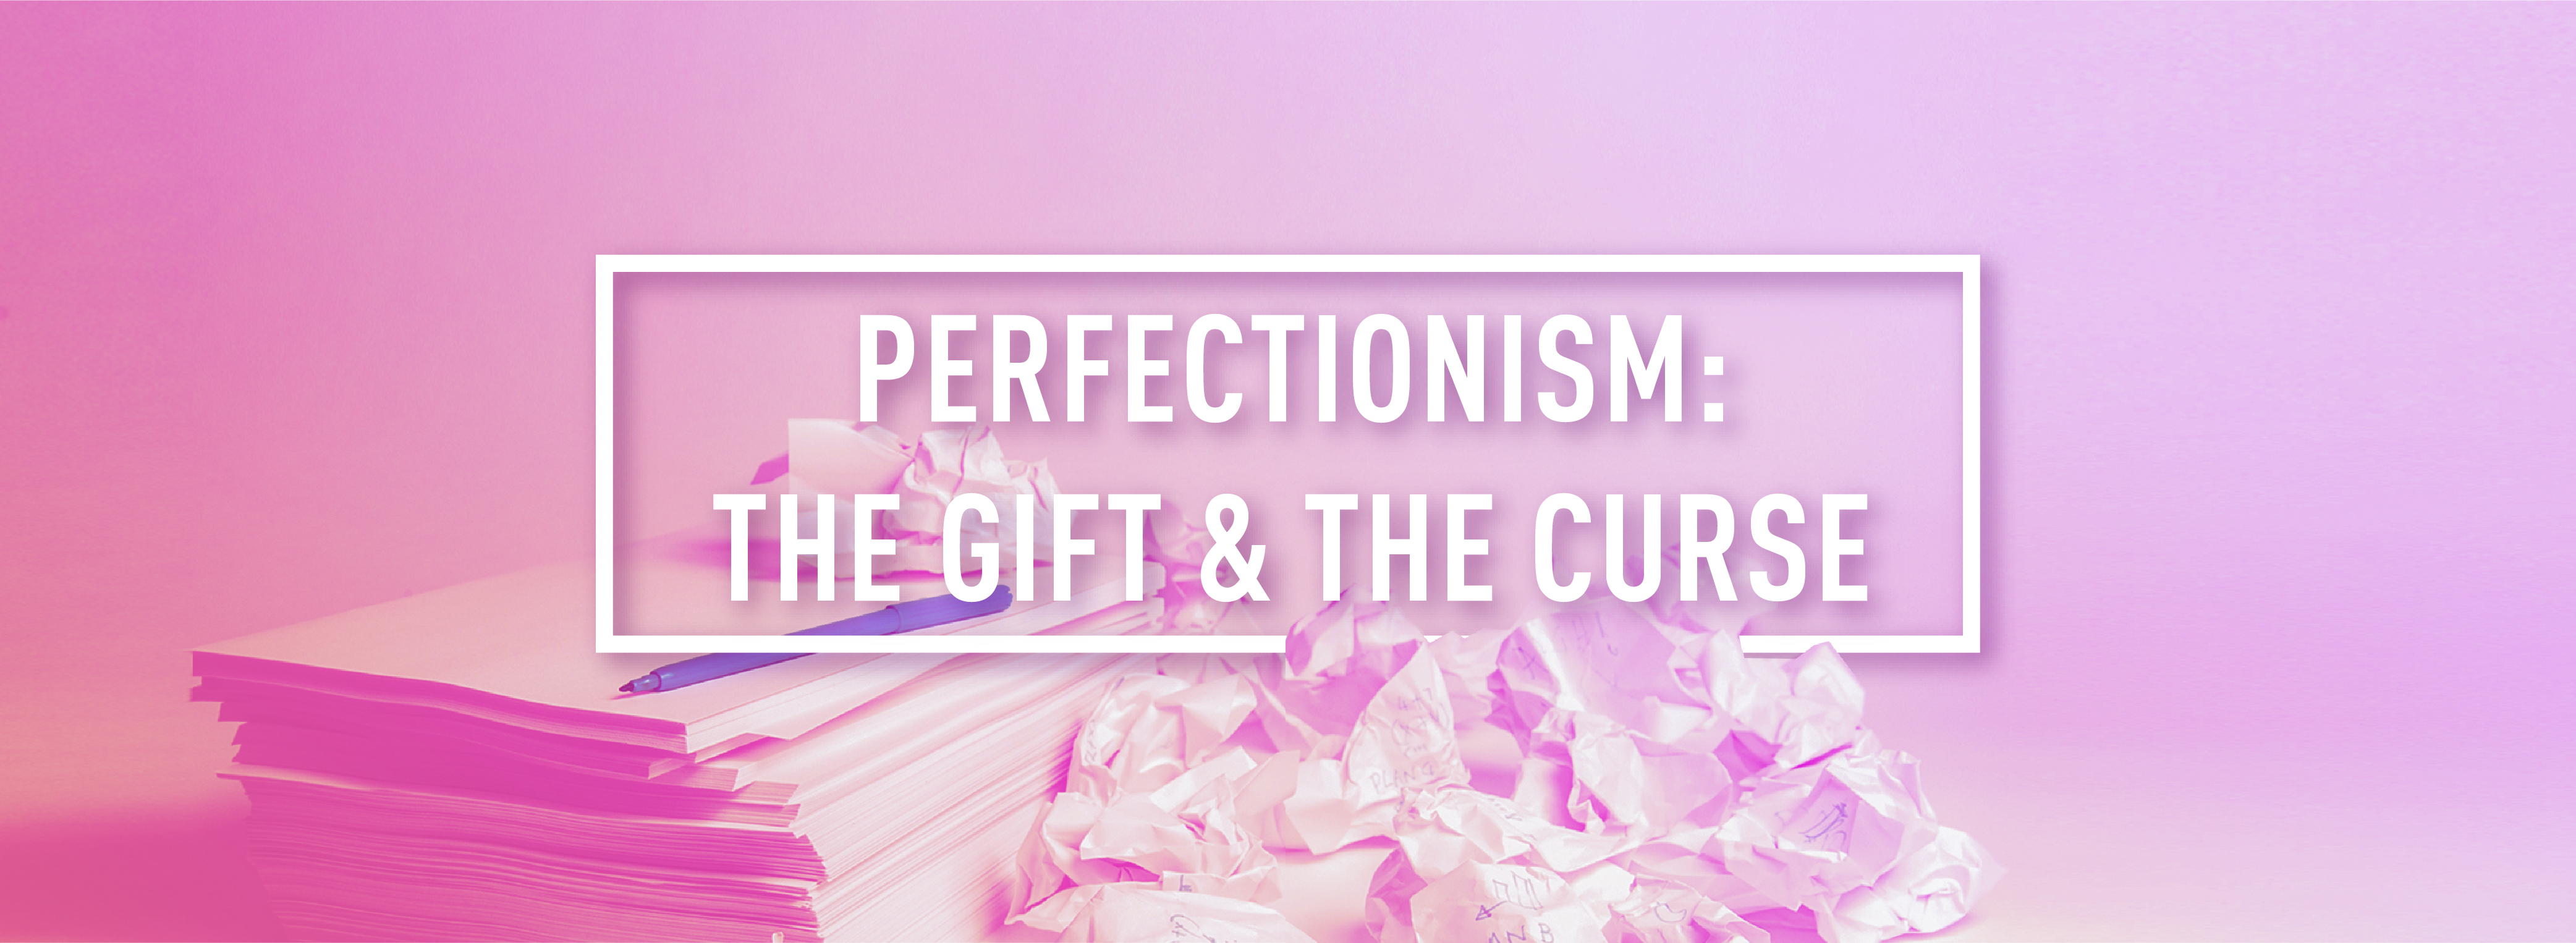 PERFECTIONISM_Webpage Header